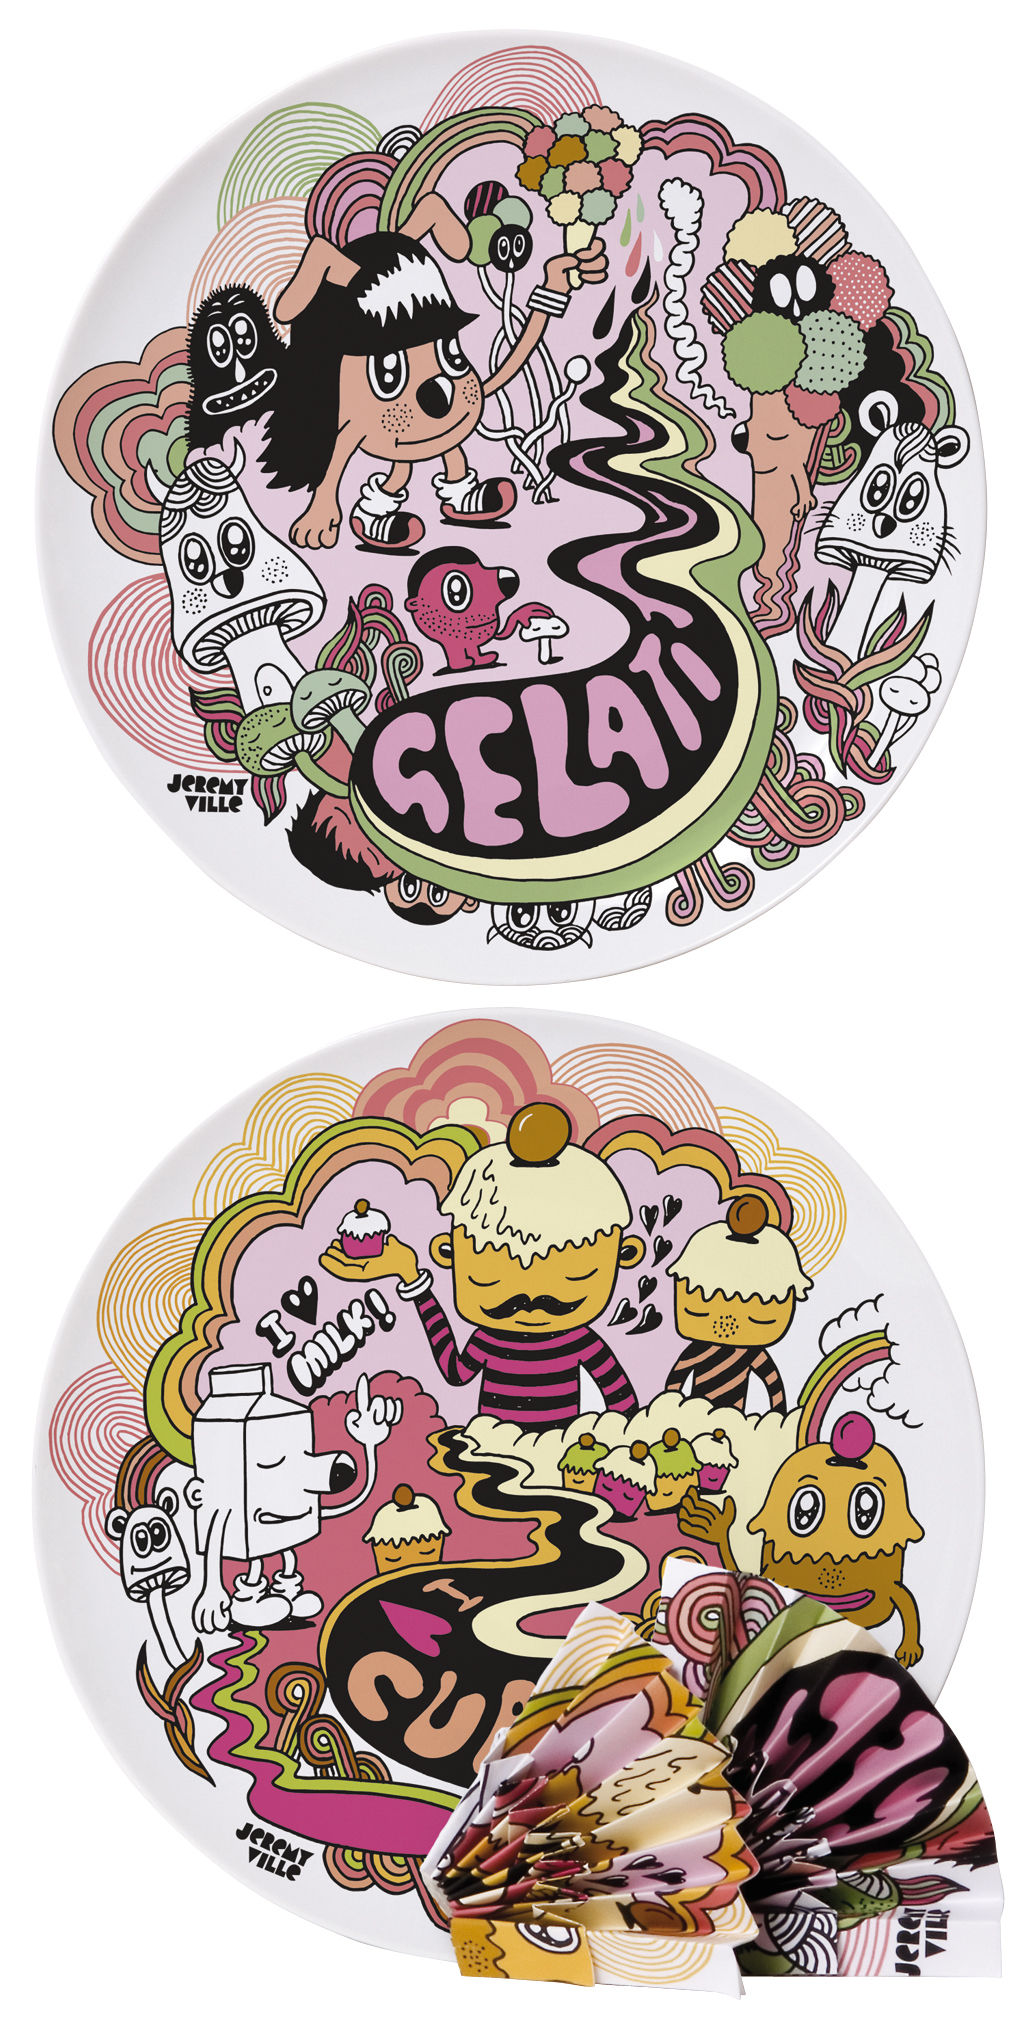 Kitchenware - Fun in the kitchen - Surface 02 - Gelati vs cupcakes Plate - Set of 2 by Domestic -  - China